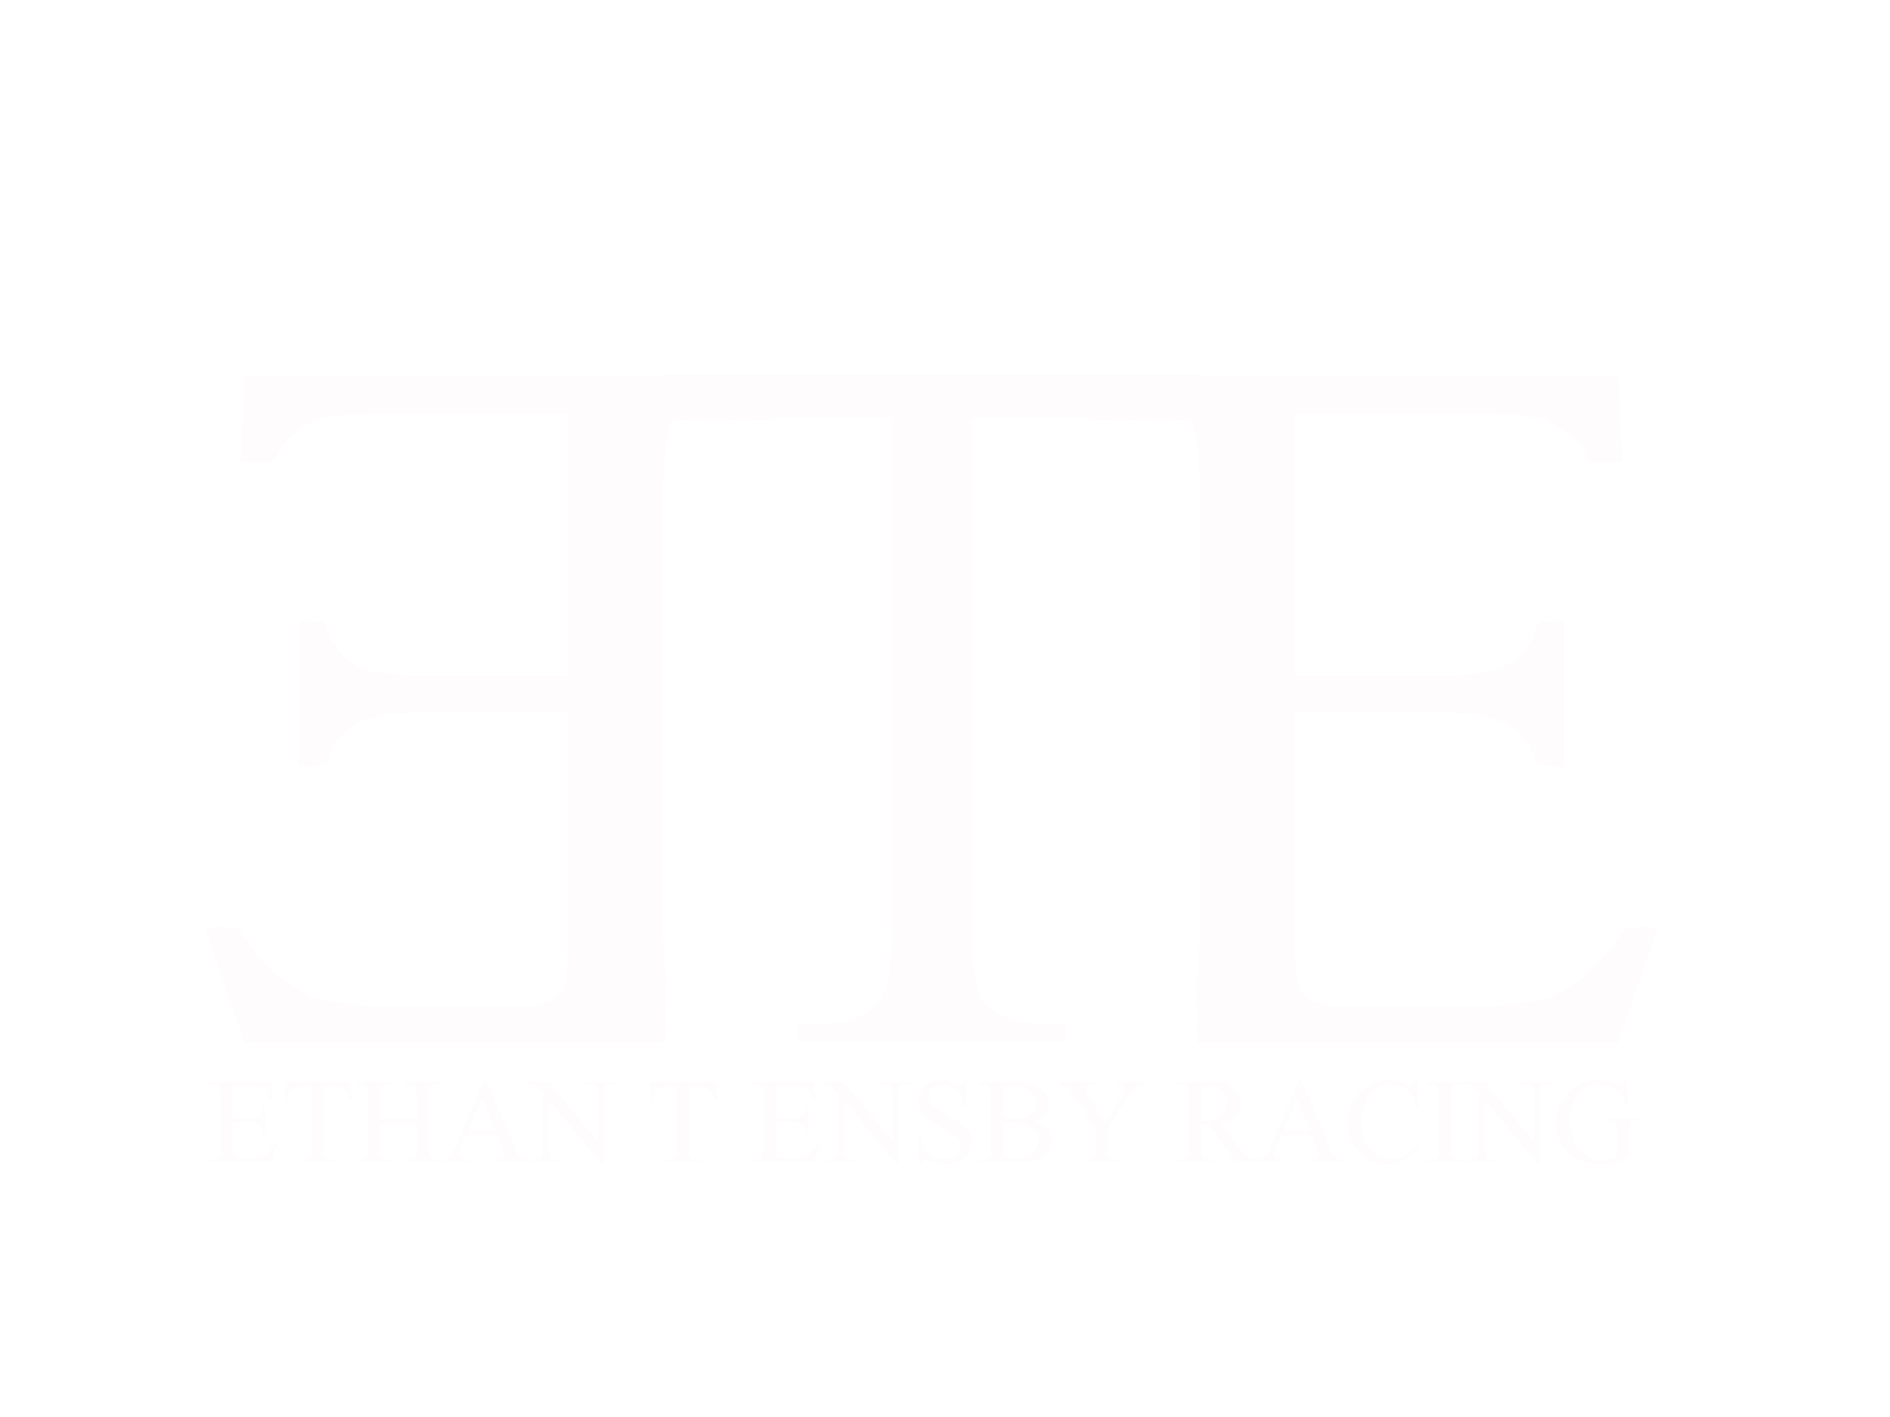 Ethan Ensby Racing